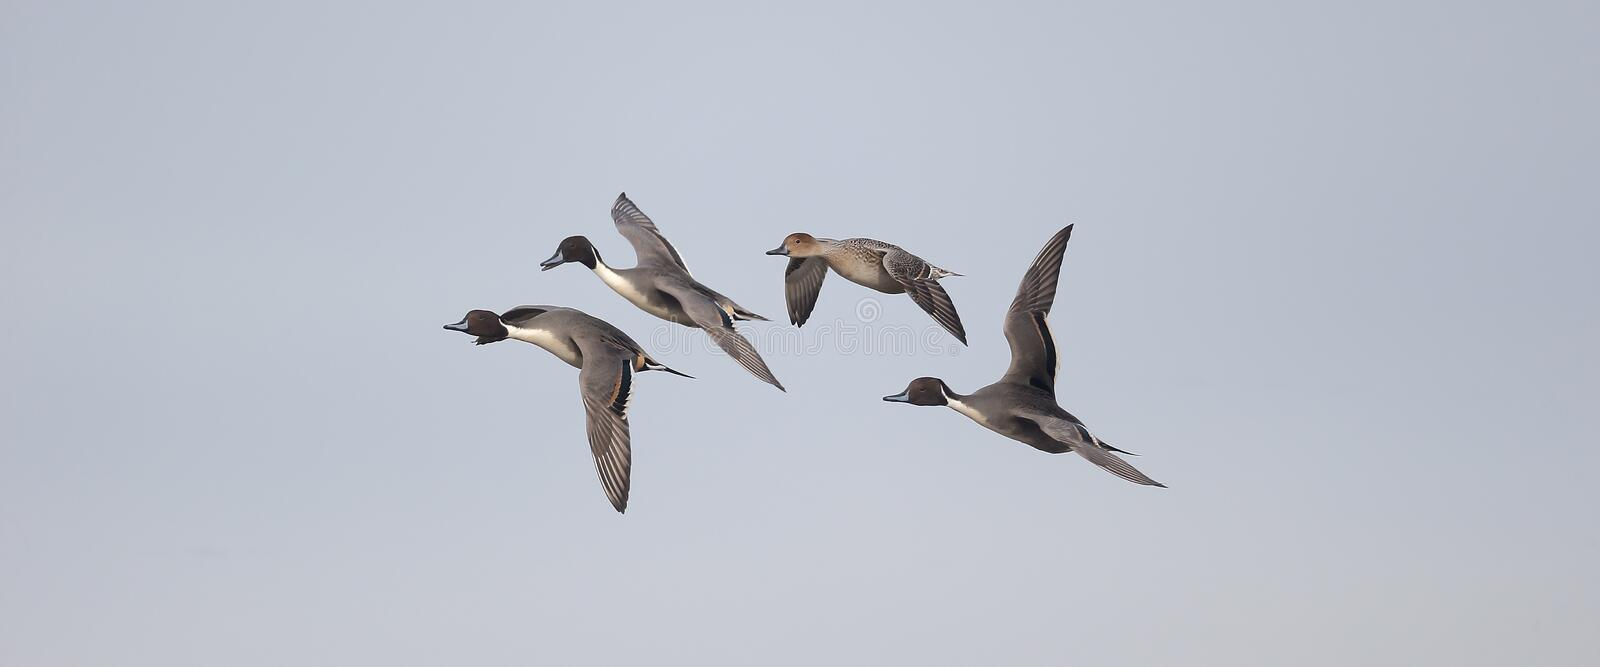 Northern pintail, Anas acuta. Group in flight, Gloucestershire, November 2014 stock photography